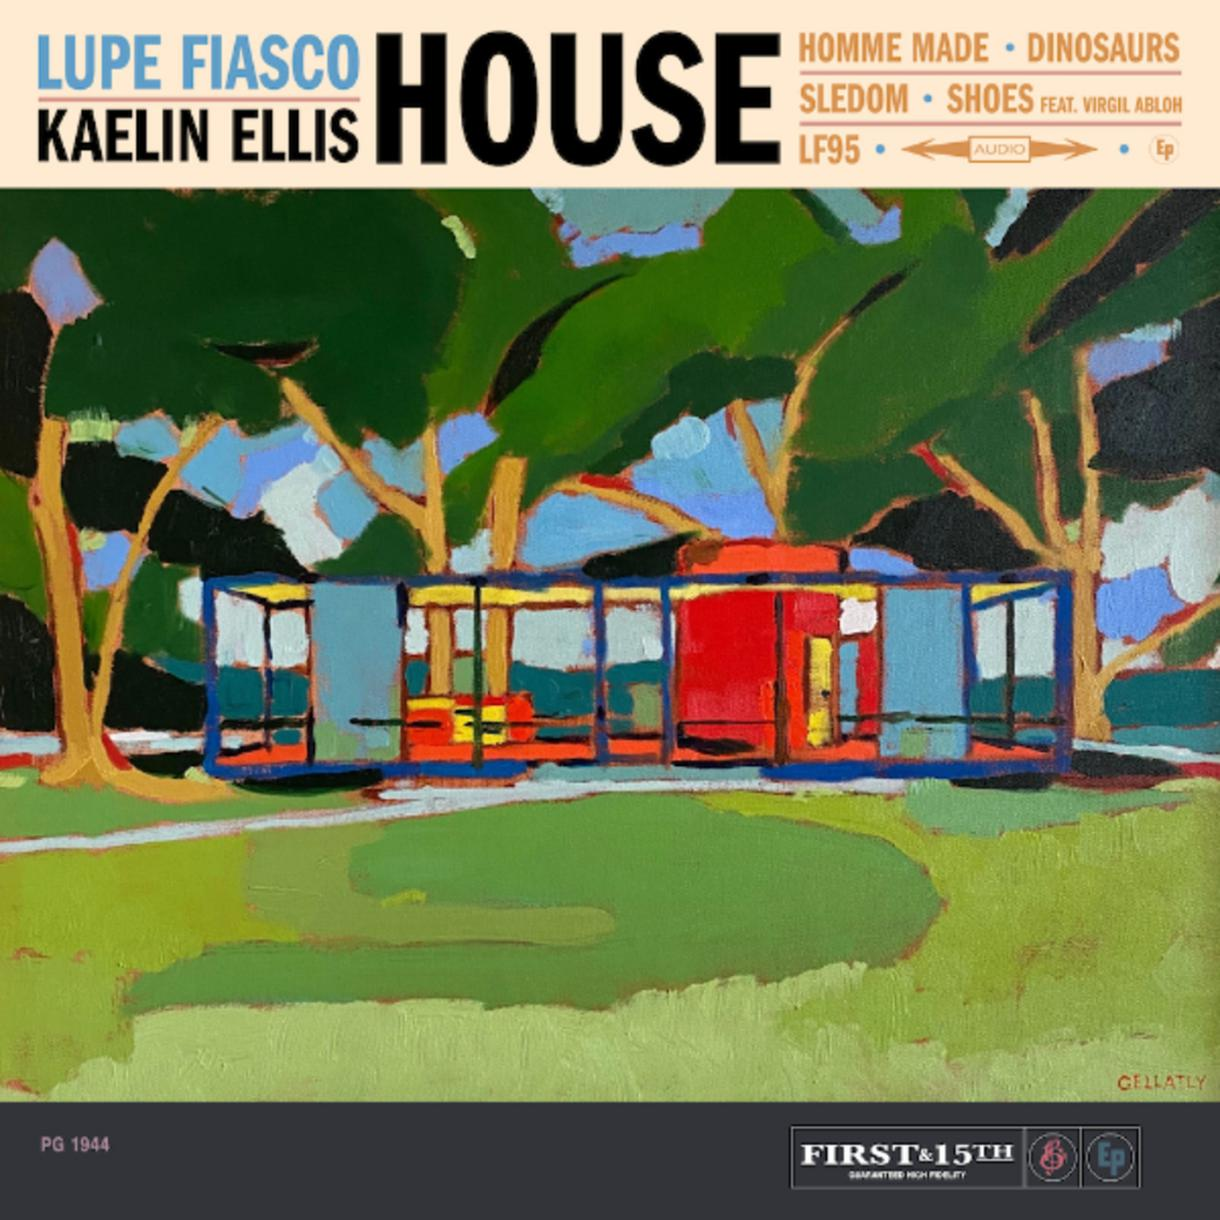 Lupe Fiasco and Kaelin Ellis Share New Collab EP 'HOUSE' | Complex